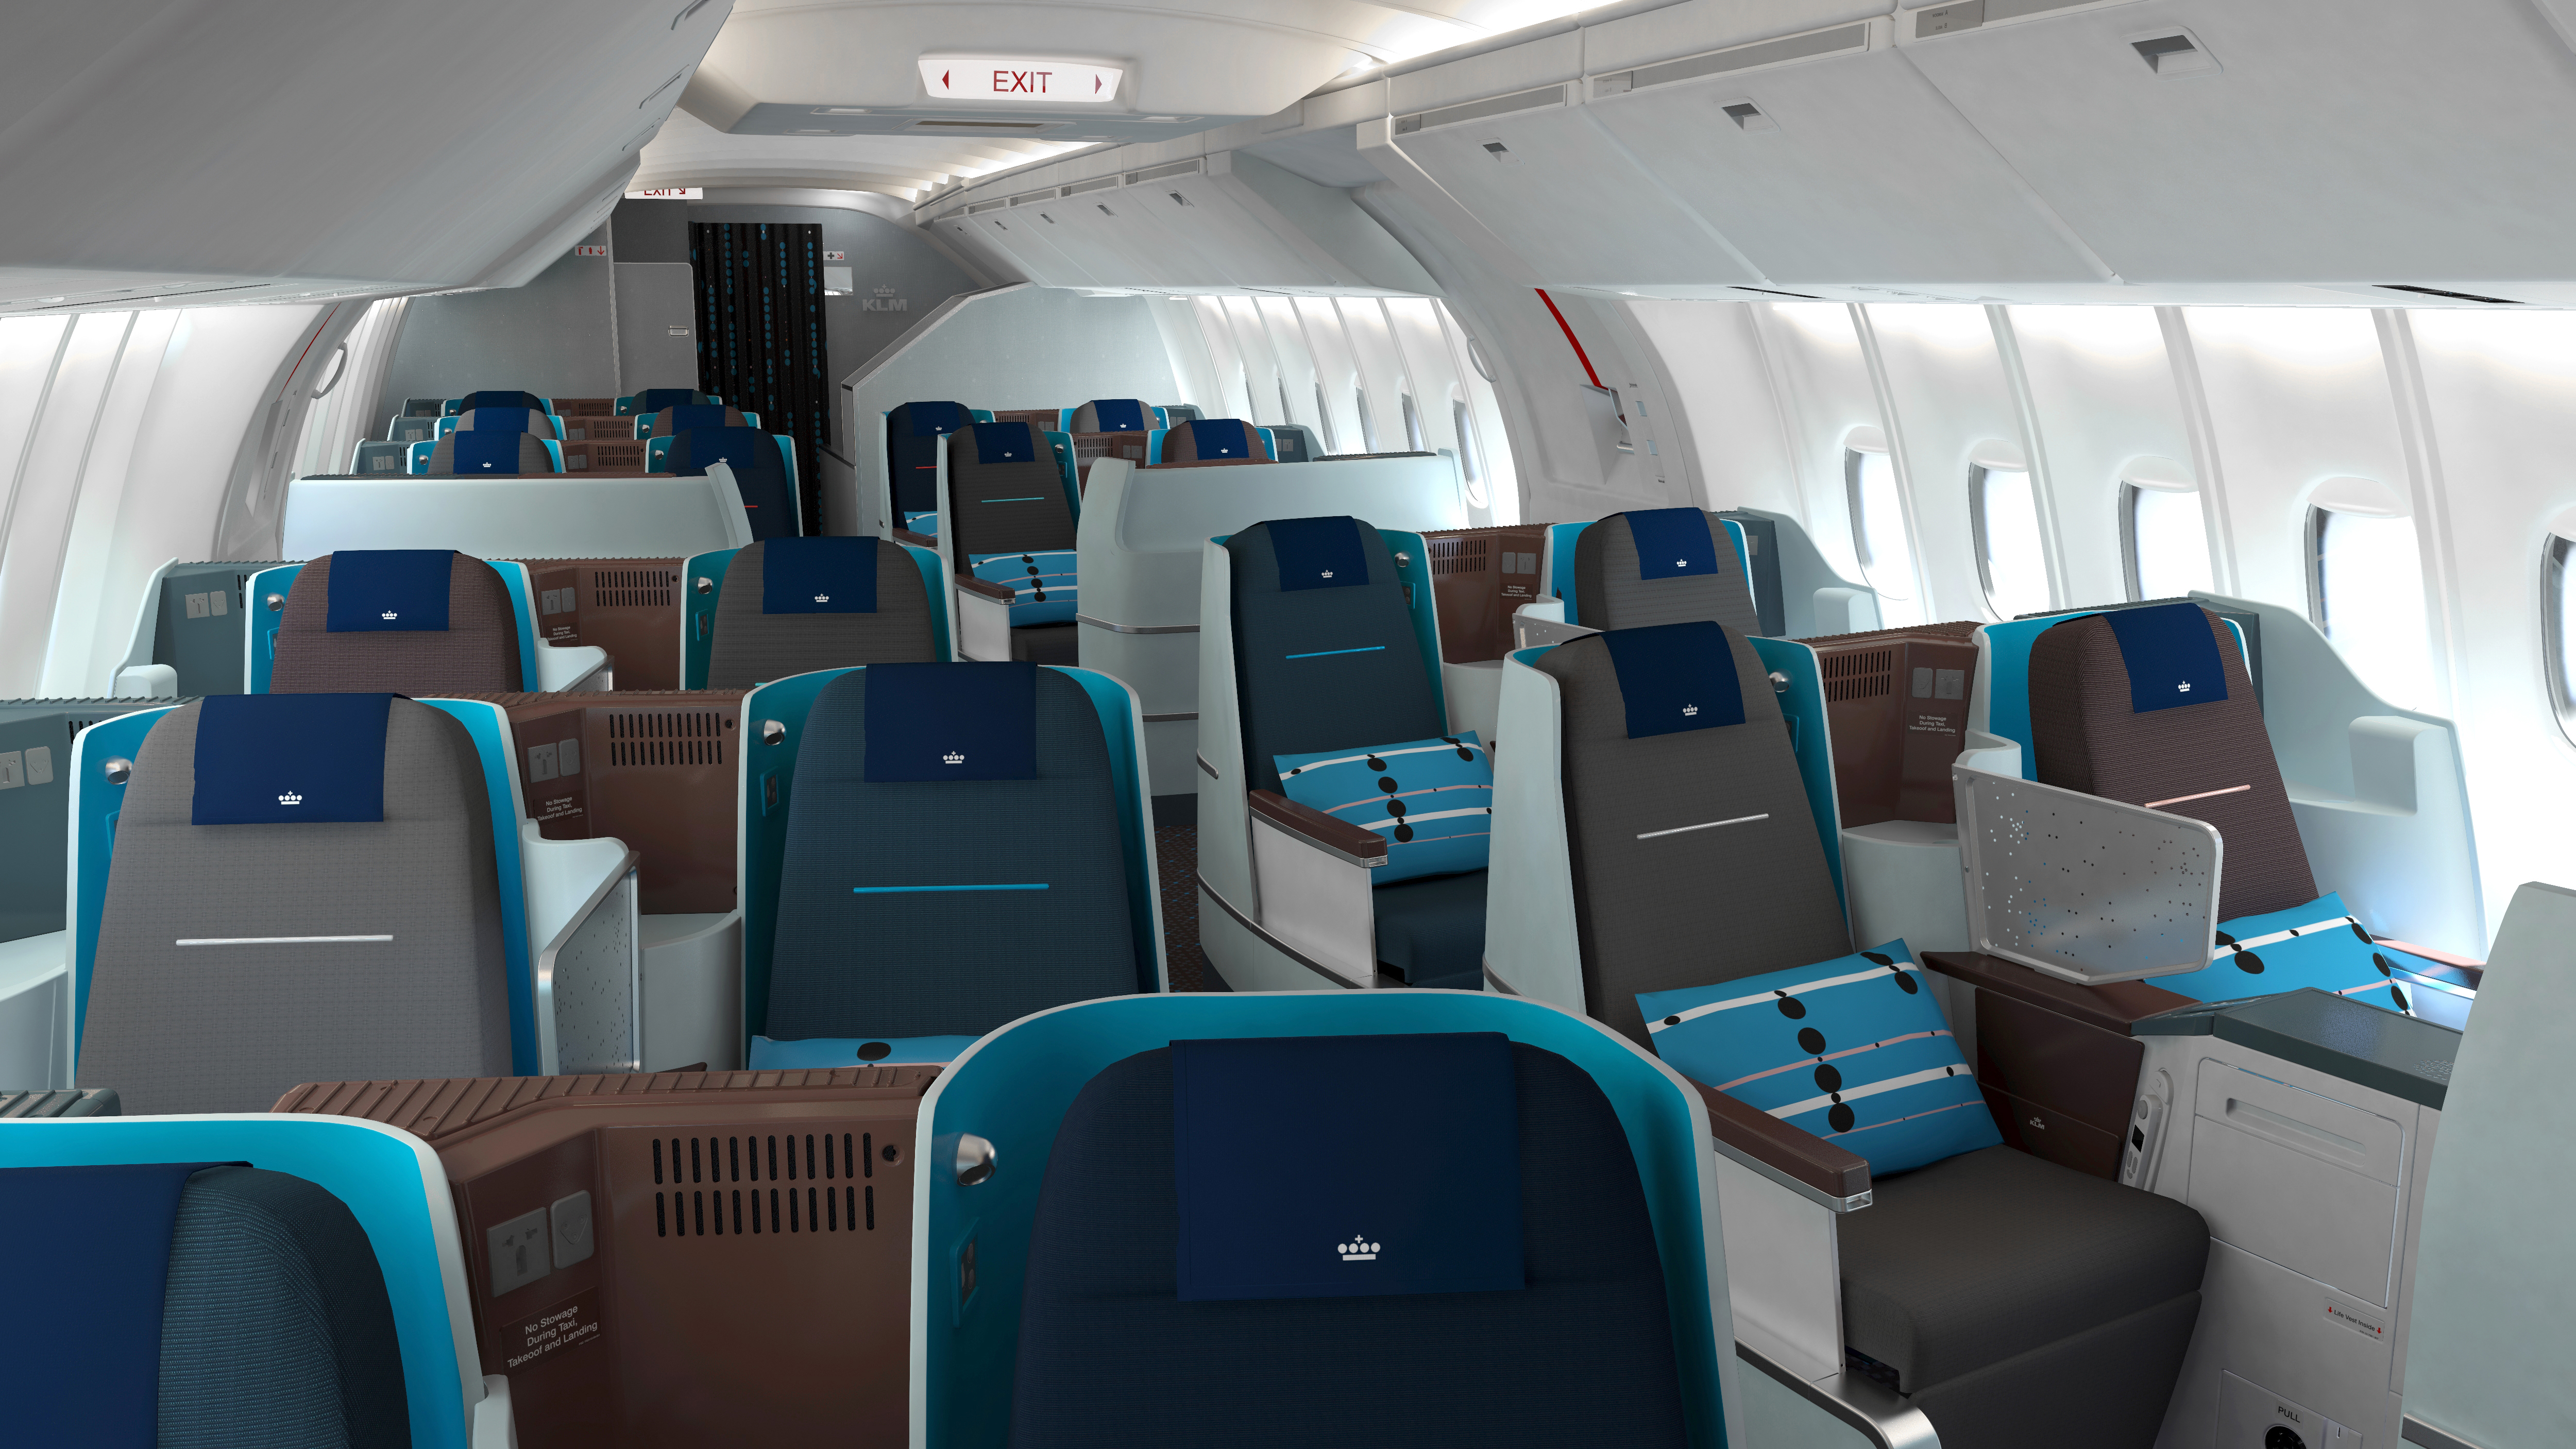 Boeing 777 jet business class klm 2017 for Boeing 777 interior